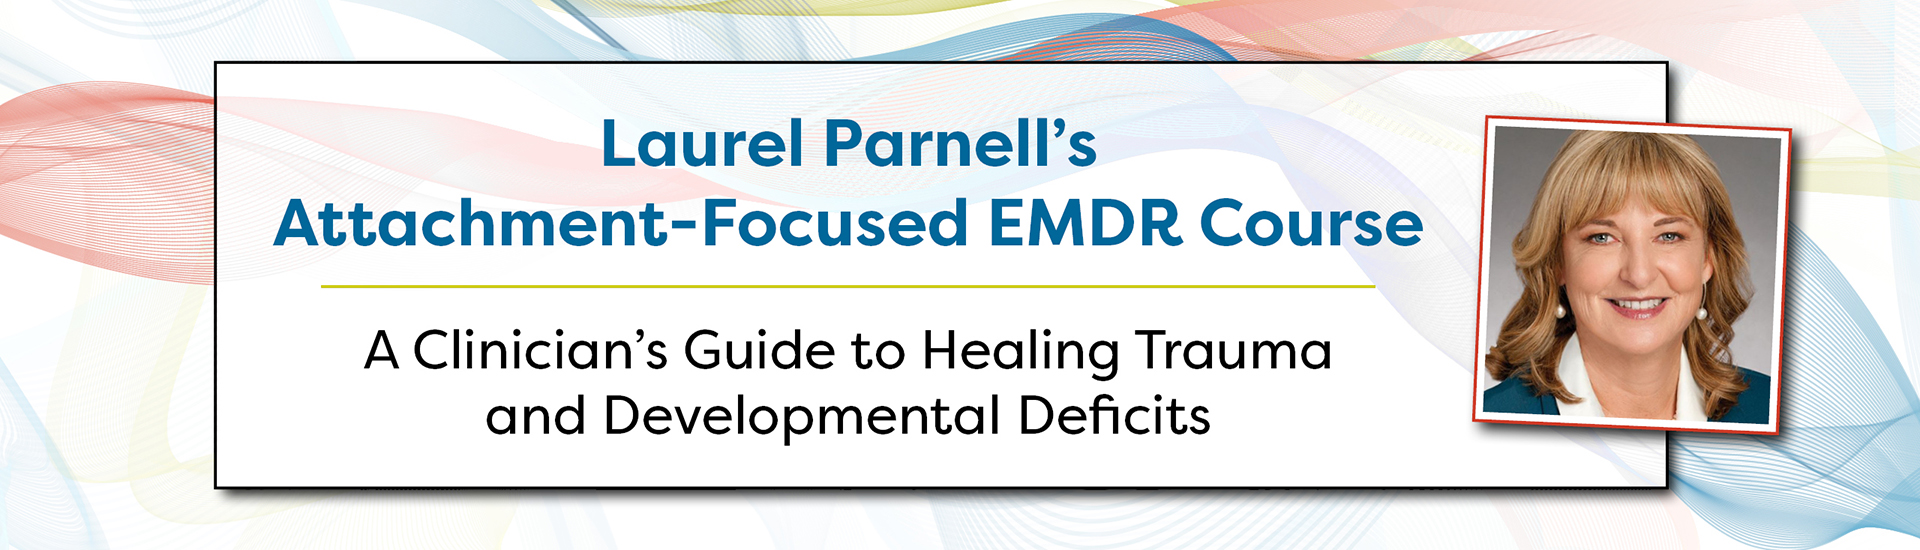 Laurel Parnell's Attachment-Focused EMDR Course